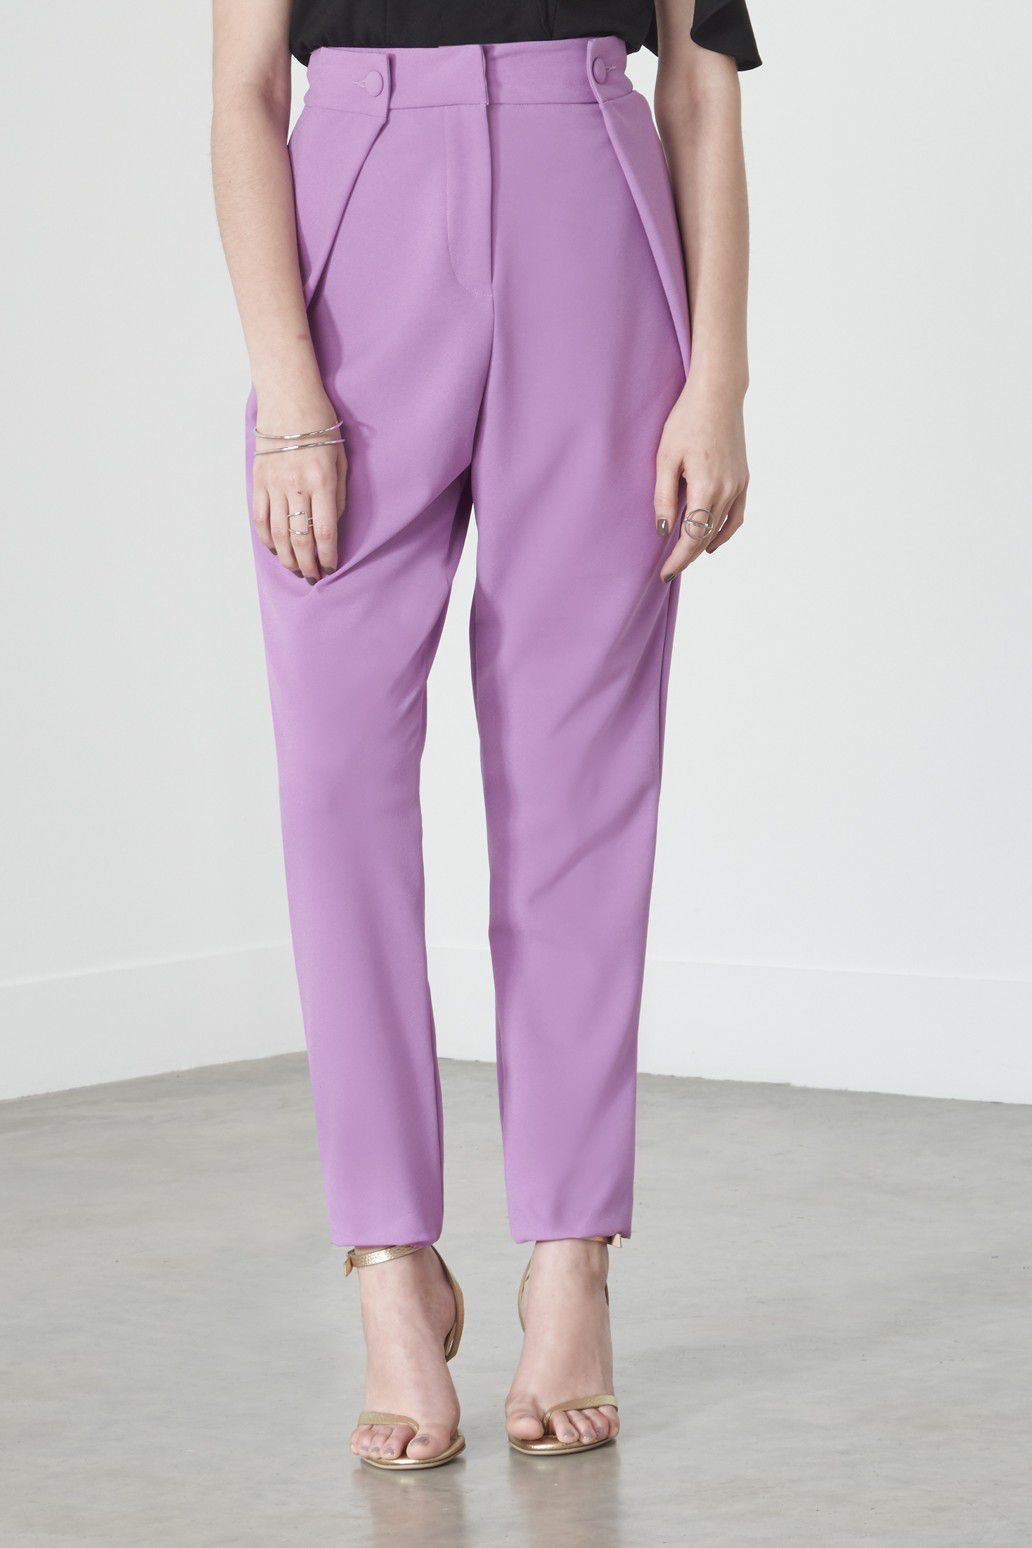 Lavish Alice Button Tab Tailored Trousers in Violet, $75.28